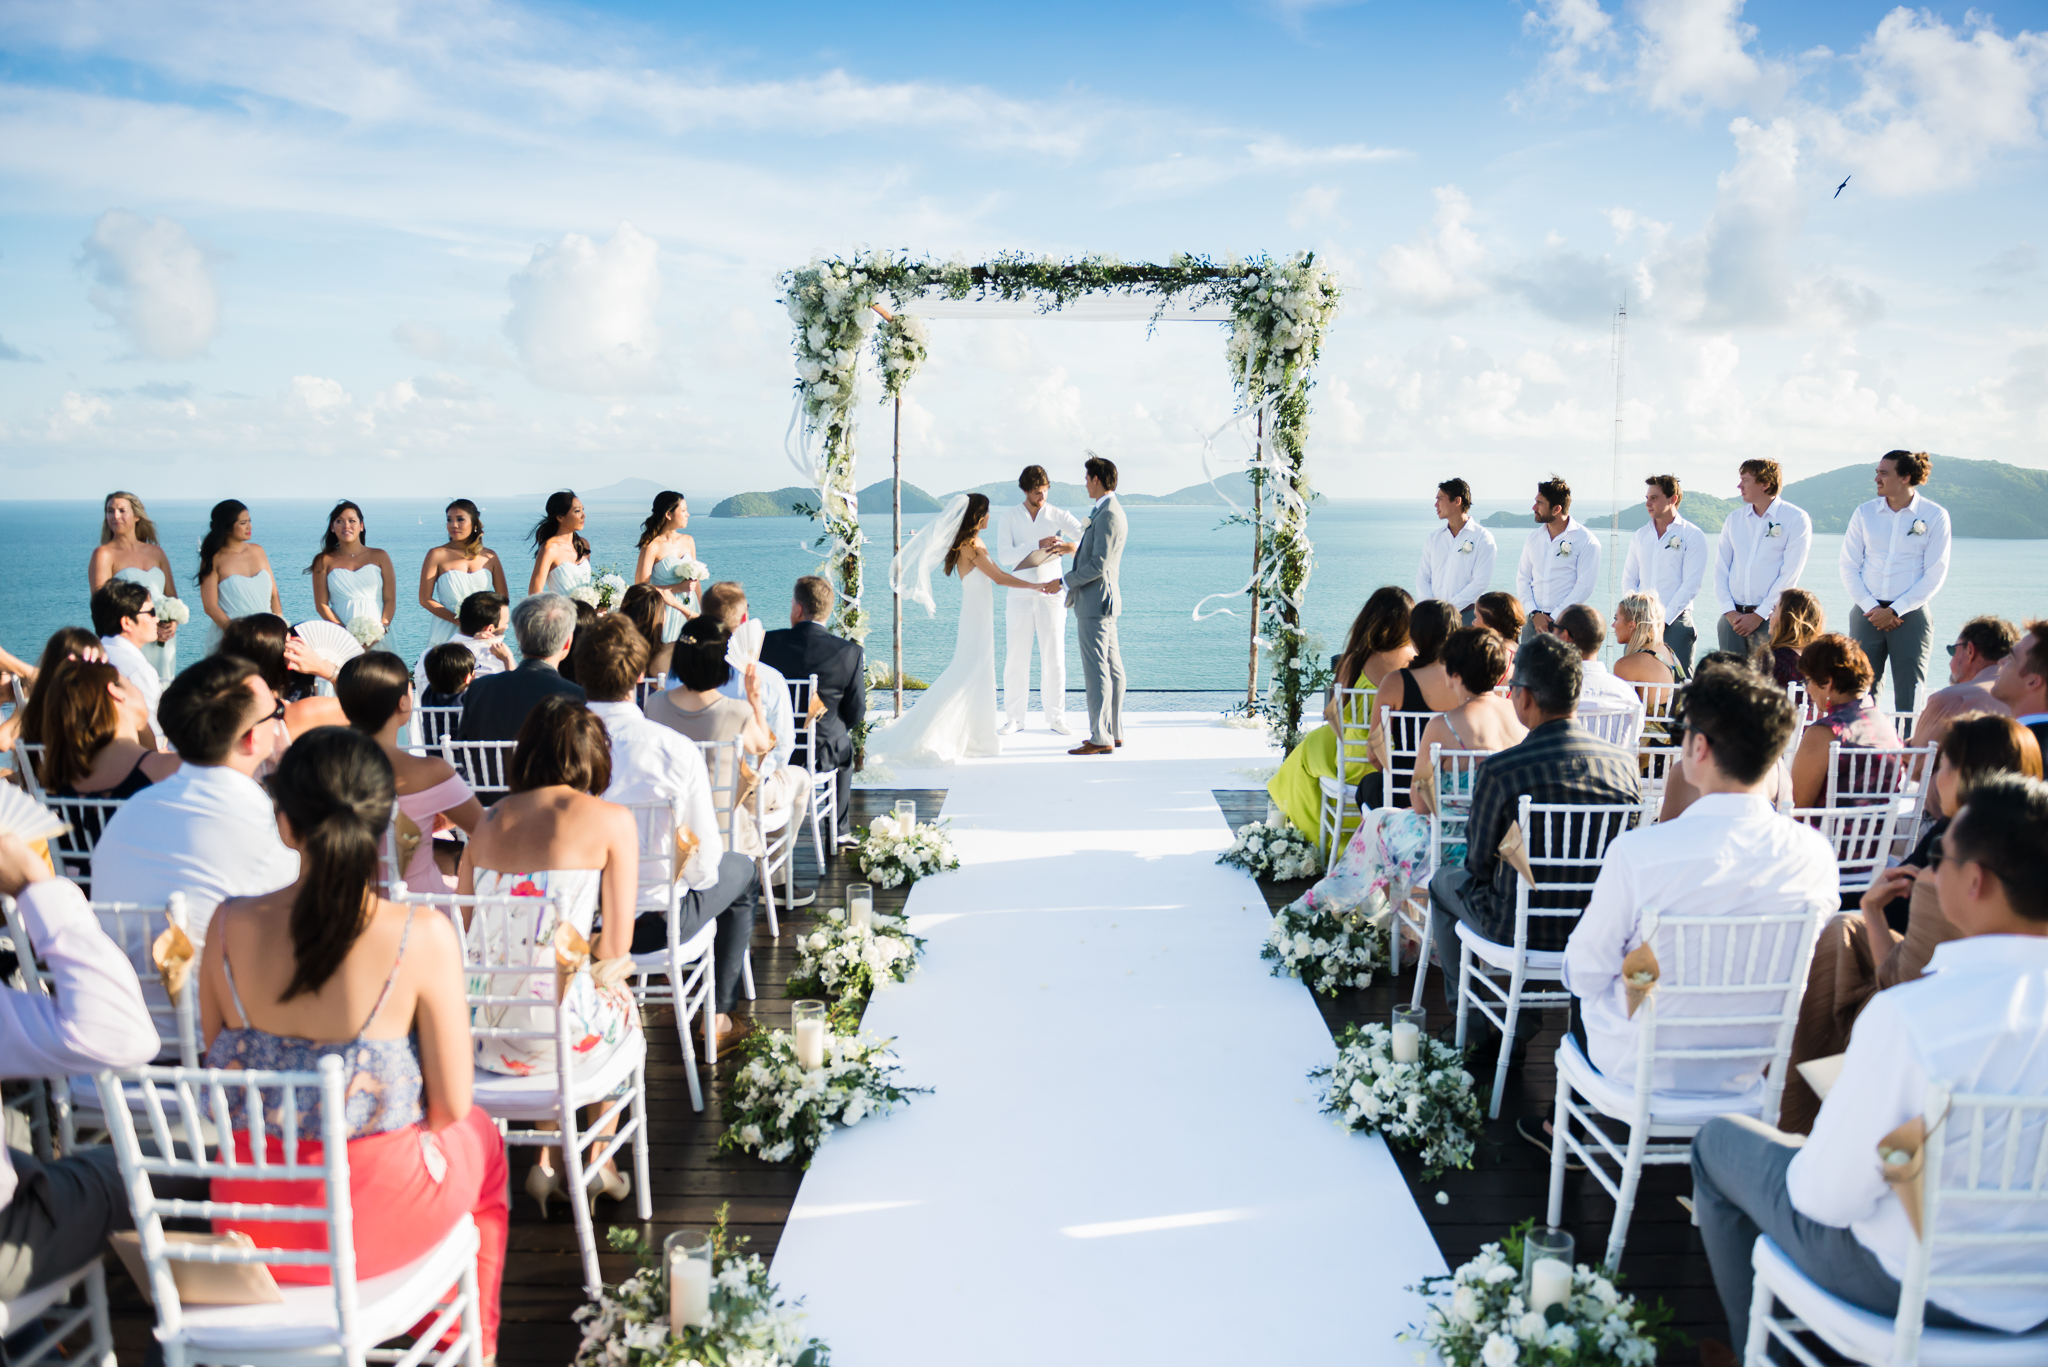 beach wedding ceremonies - photo by DarinImages http://ruffledblog.com/this-bride-is-sharing-all-you-need-to-know-about-a-destination-wedding-in-thailand